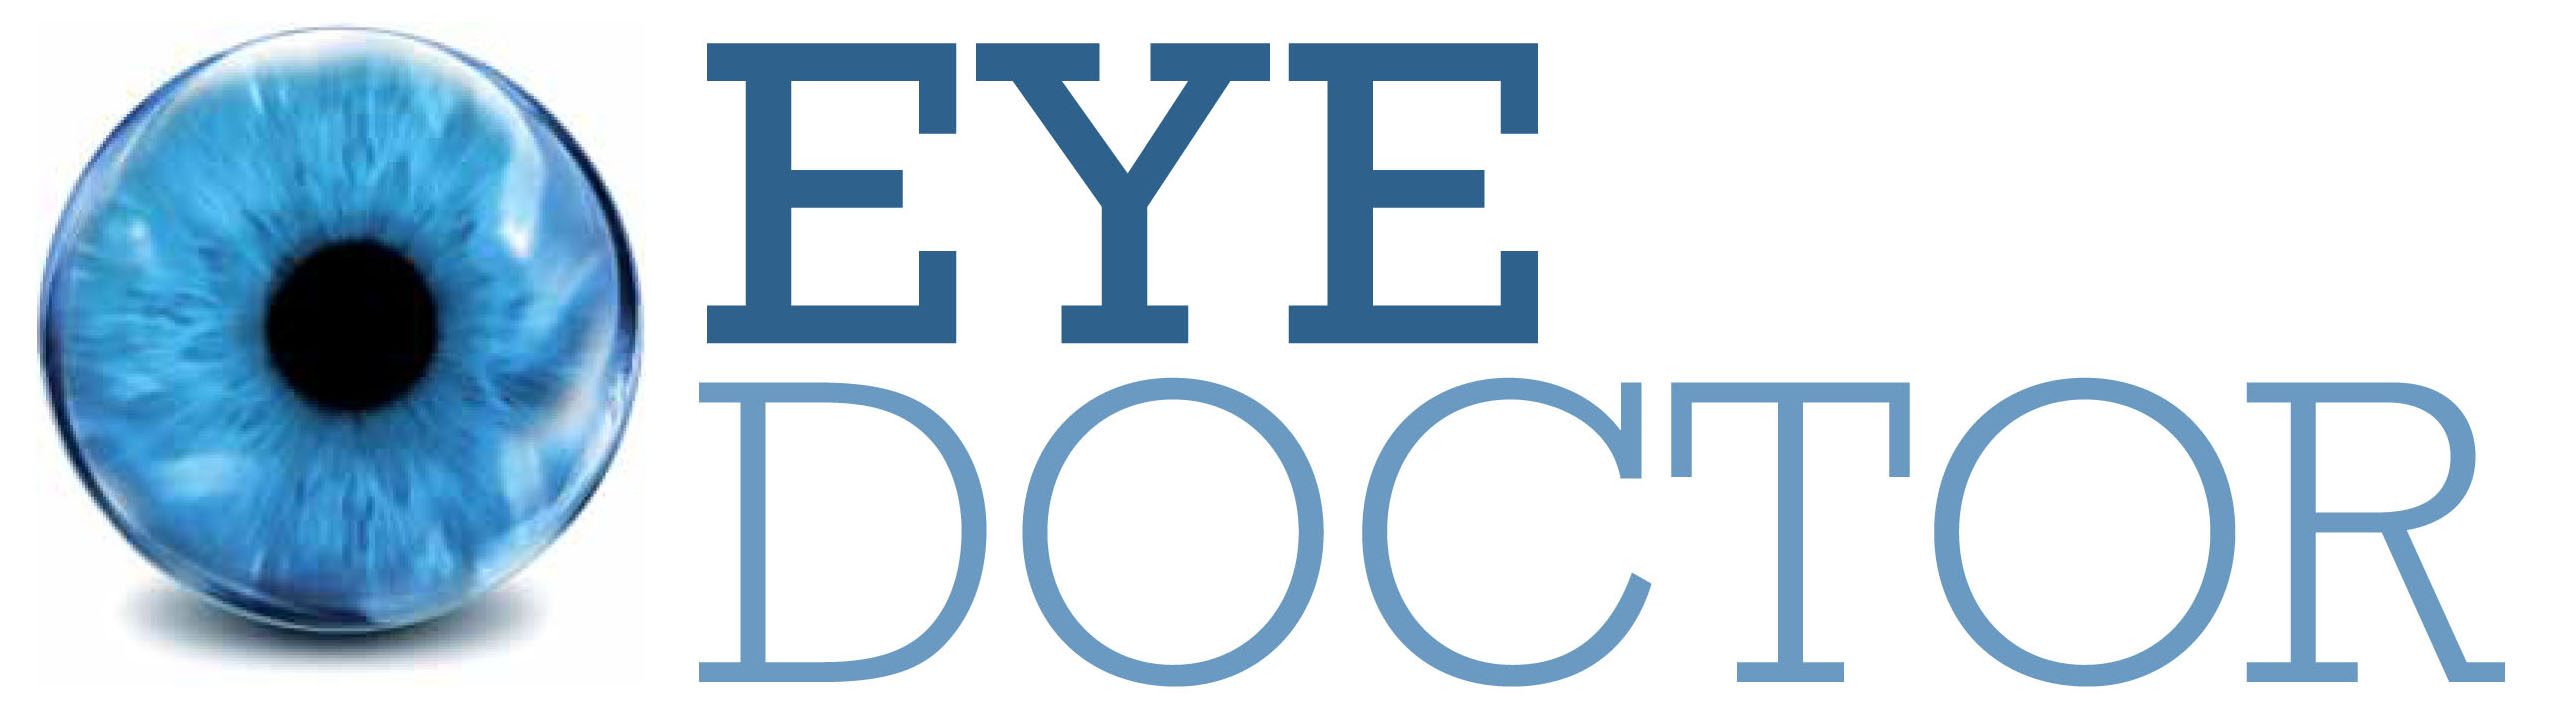 eye_doctor_logo